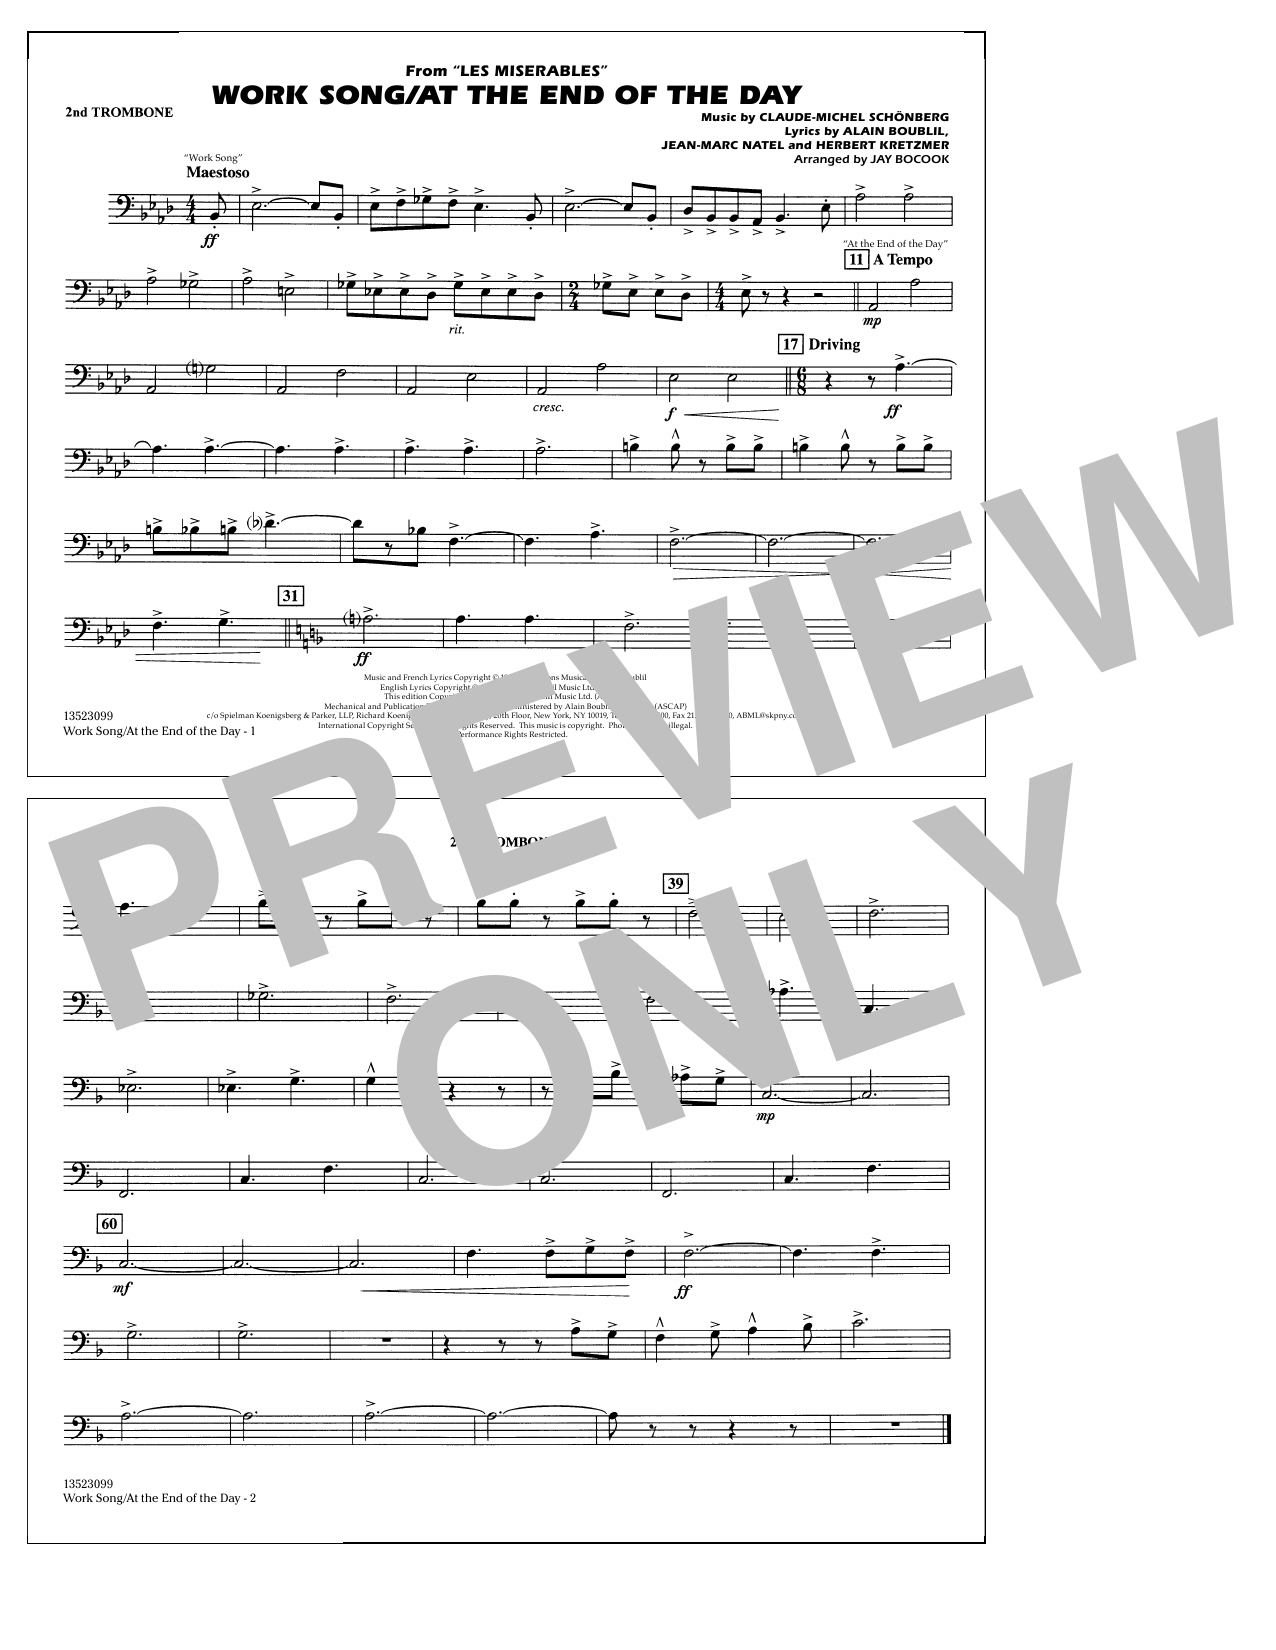 Work Song/At the End of the Day (Les Misérables) (arr. Jay Bocook) - 2nd Trombone (Marching Band)